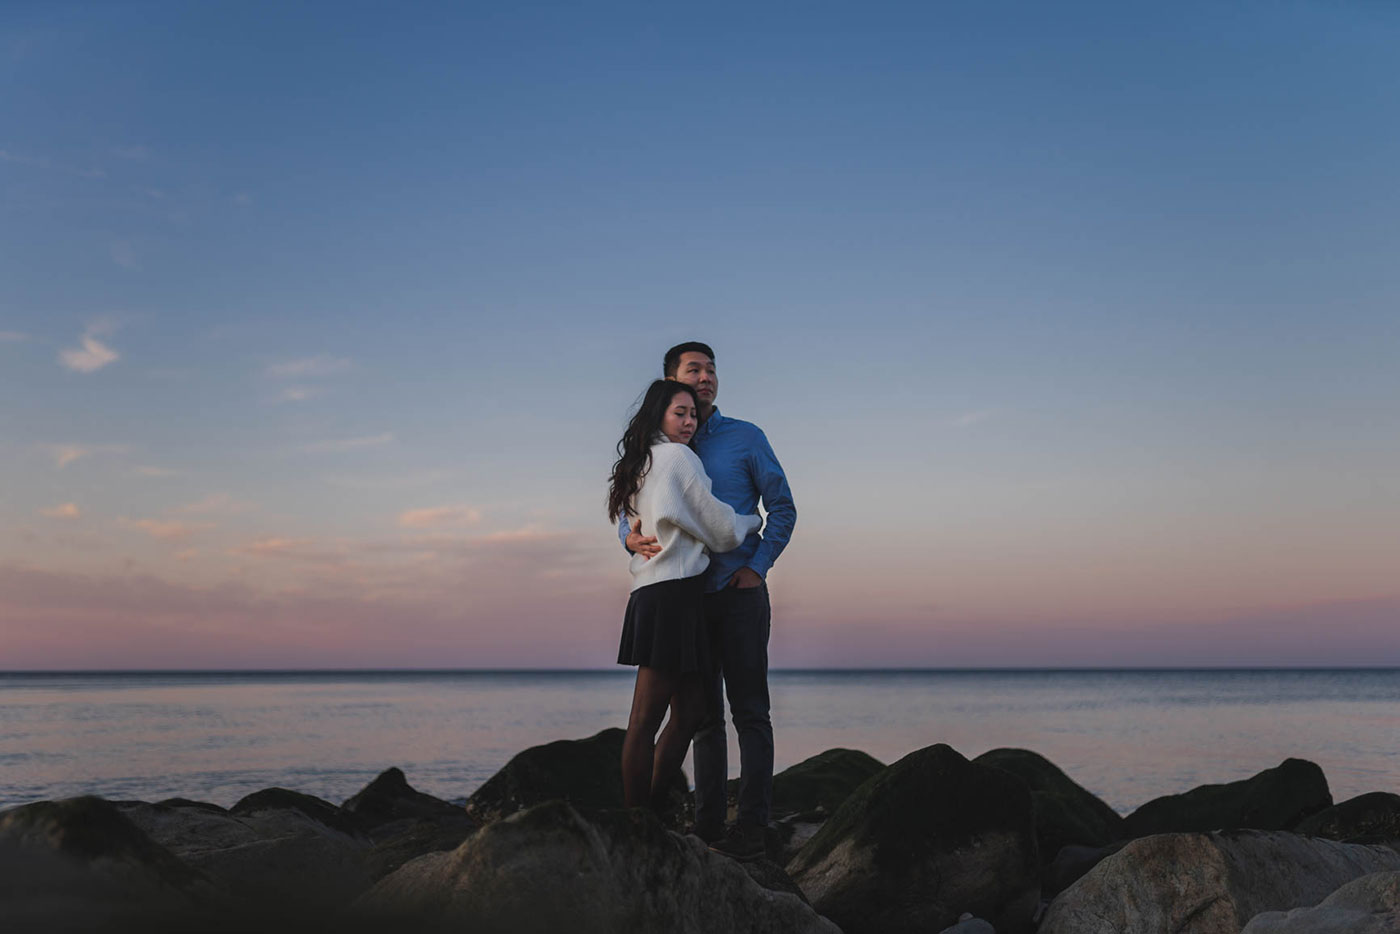 sundown Wildwood state park + Prosser Pines engagement session by Weddings by Hanel